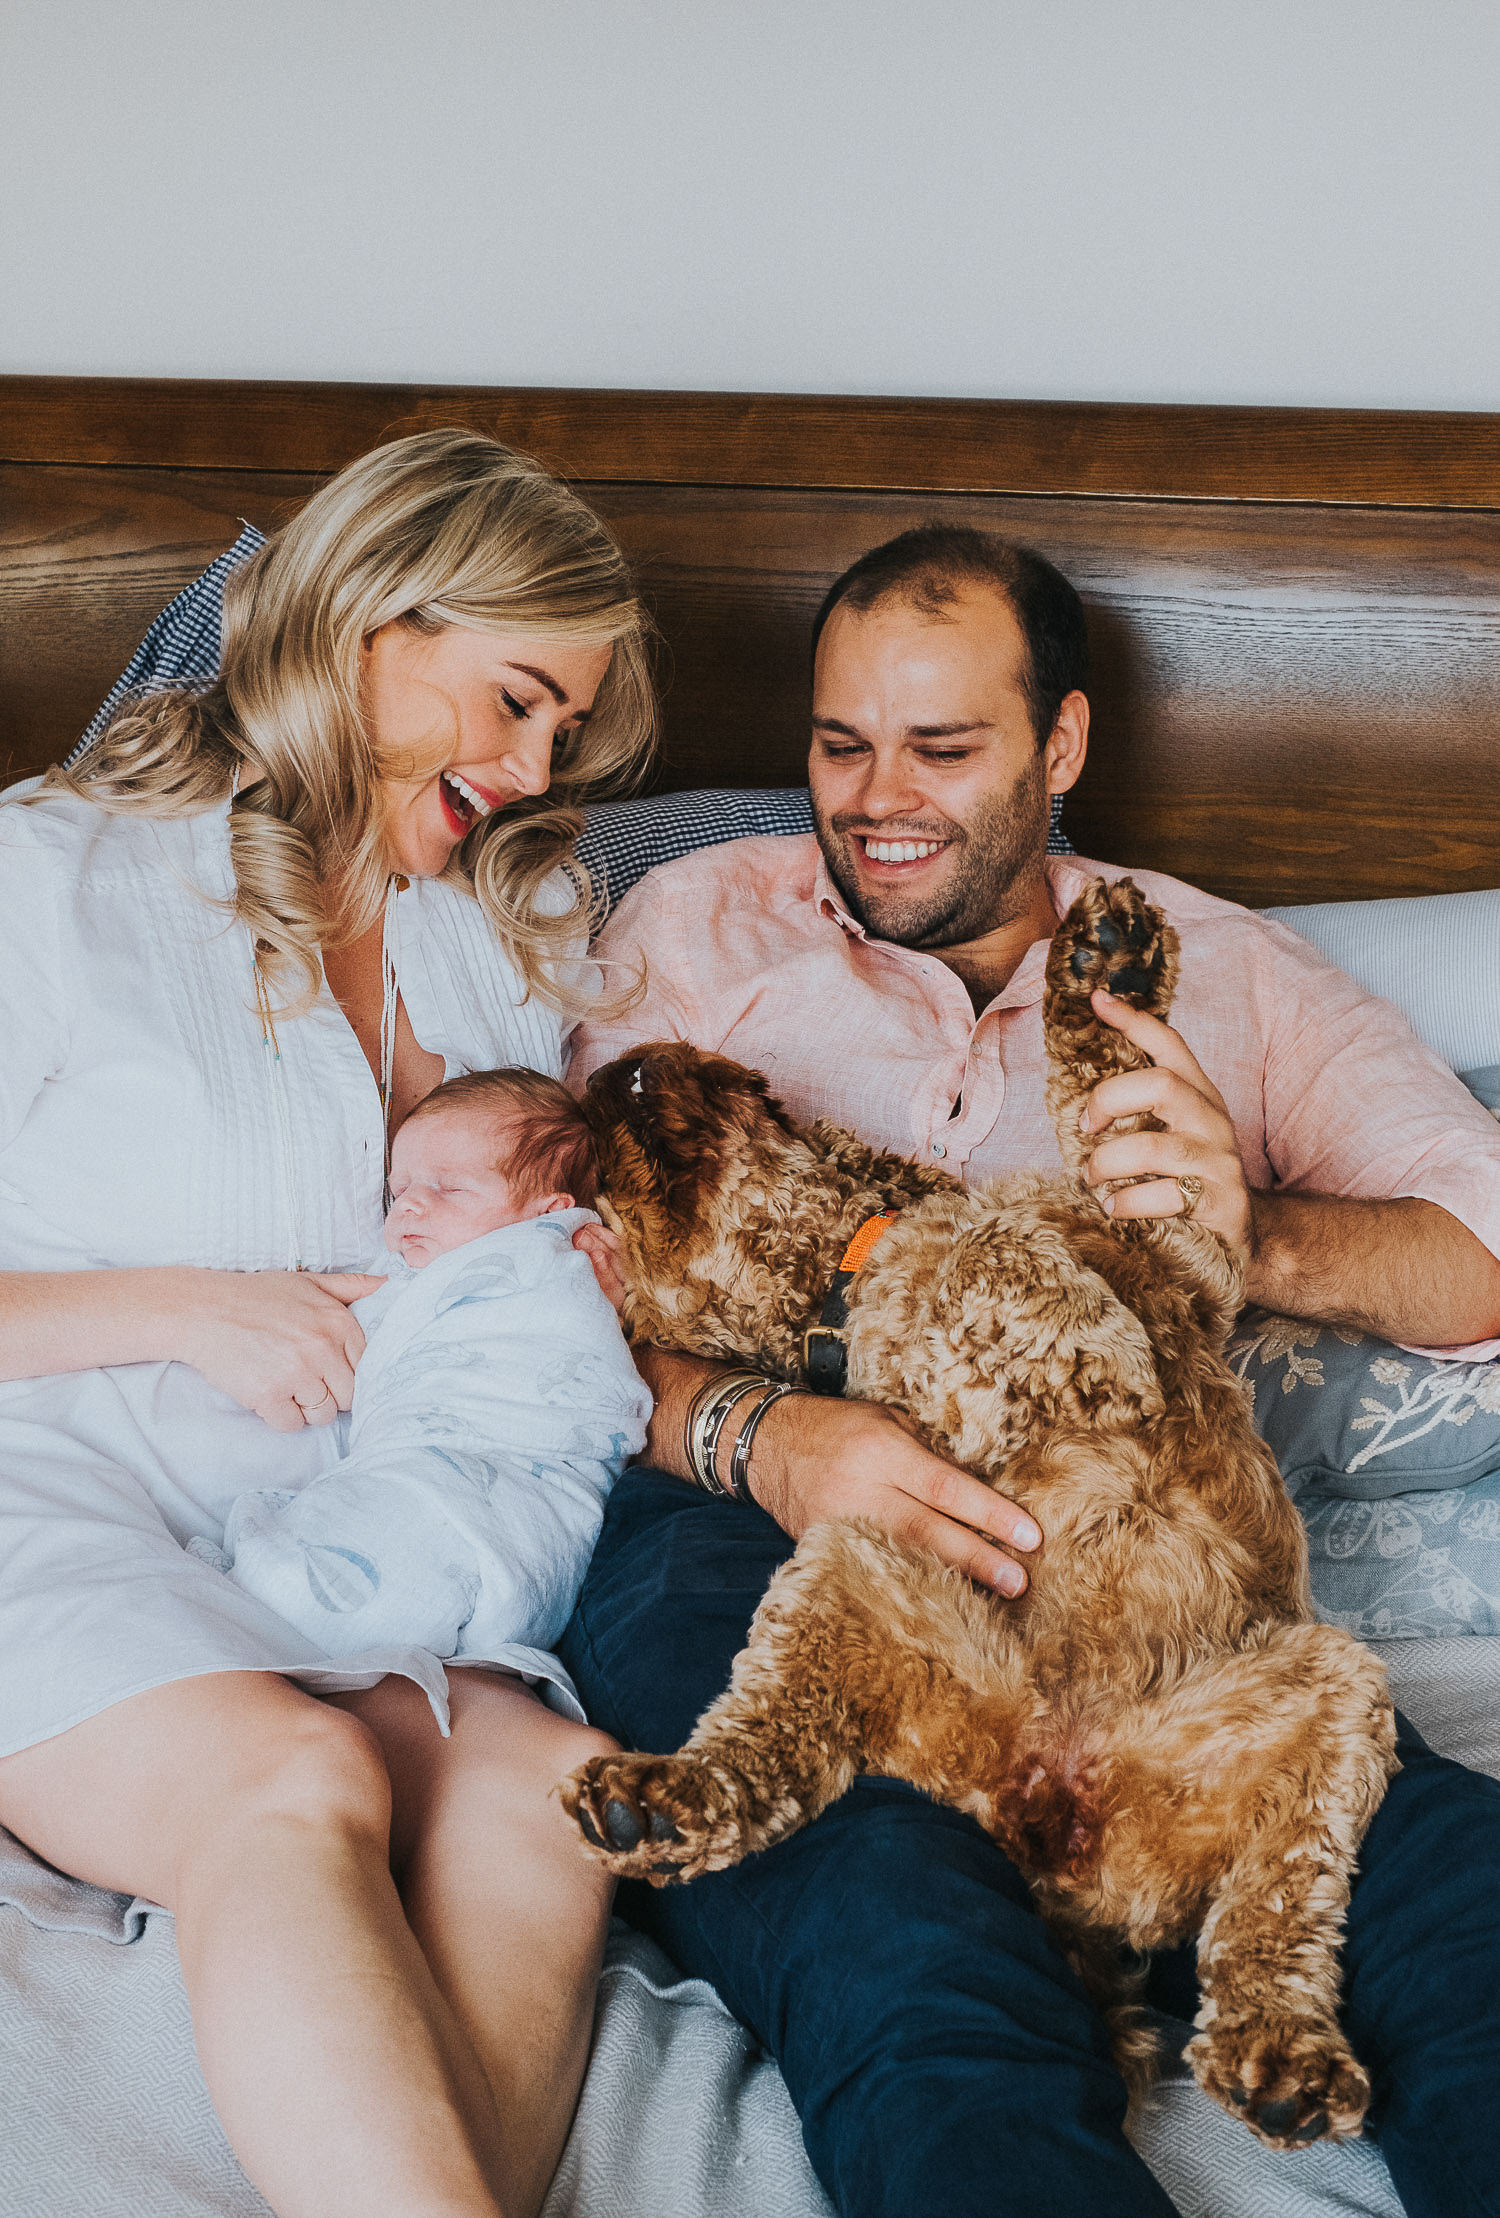 COCKAPOO AND NEWBORN BABY PHOTO SHOOT ON BED FULHAM NEWBORN PHOTOGRAPHER